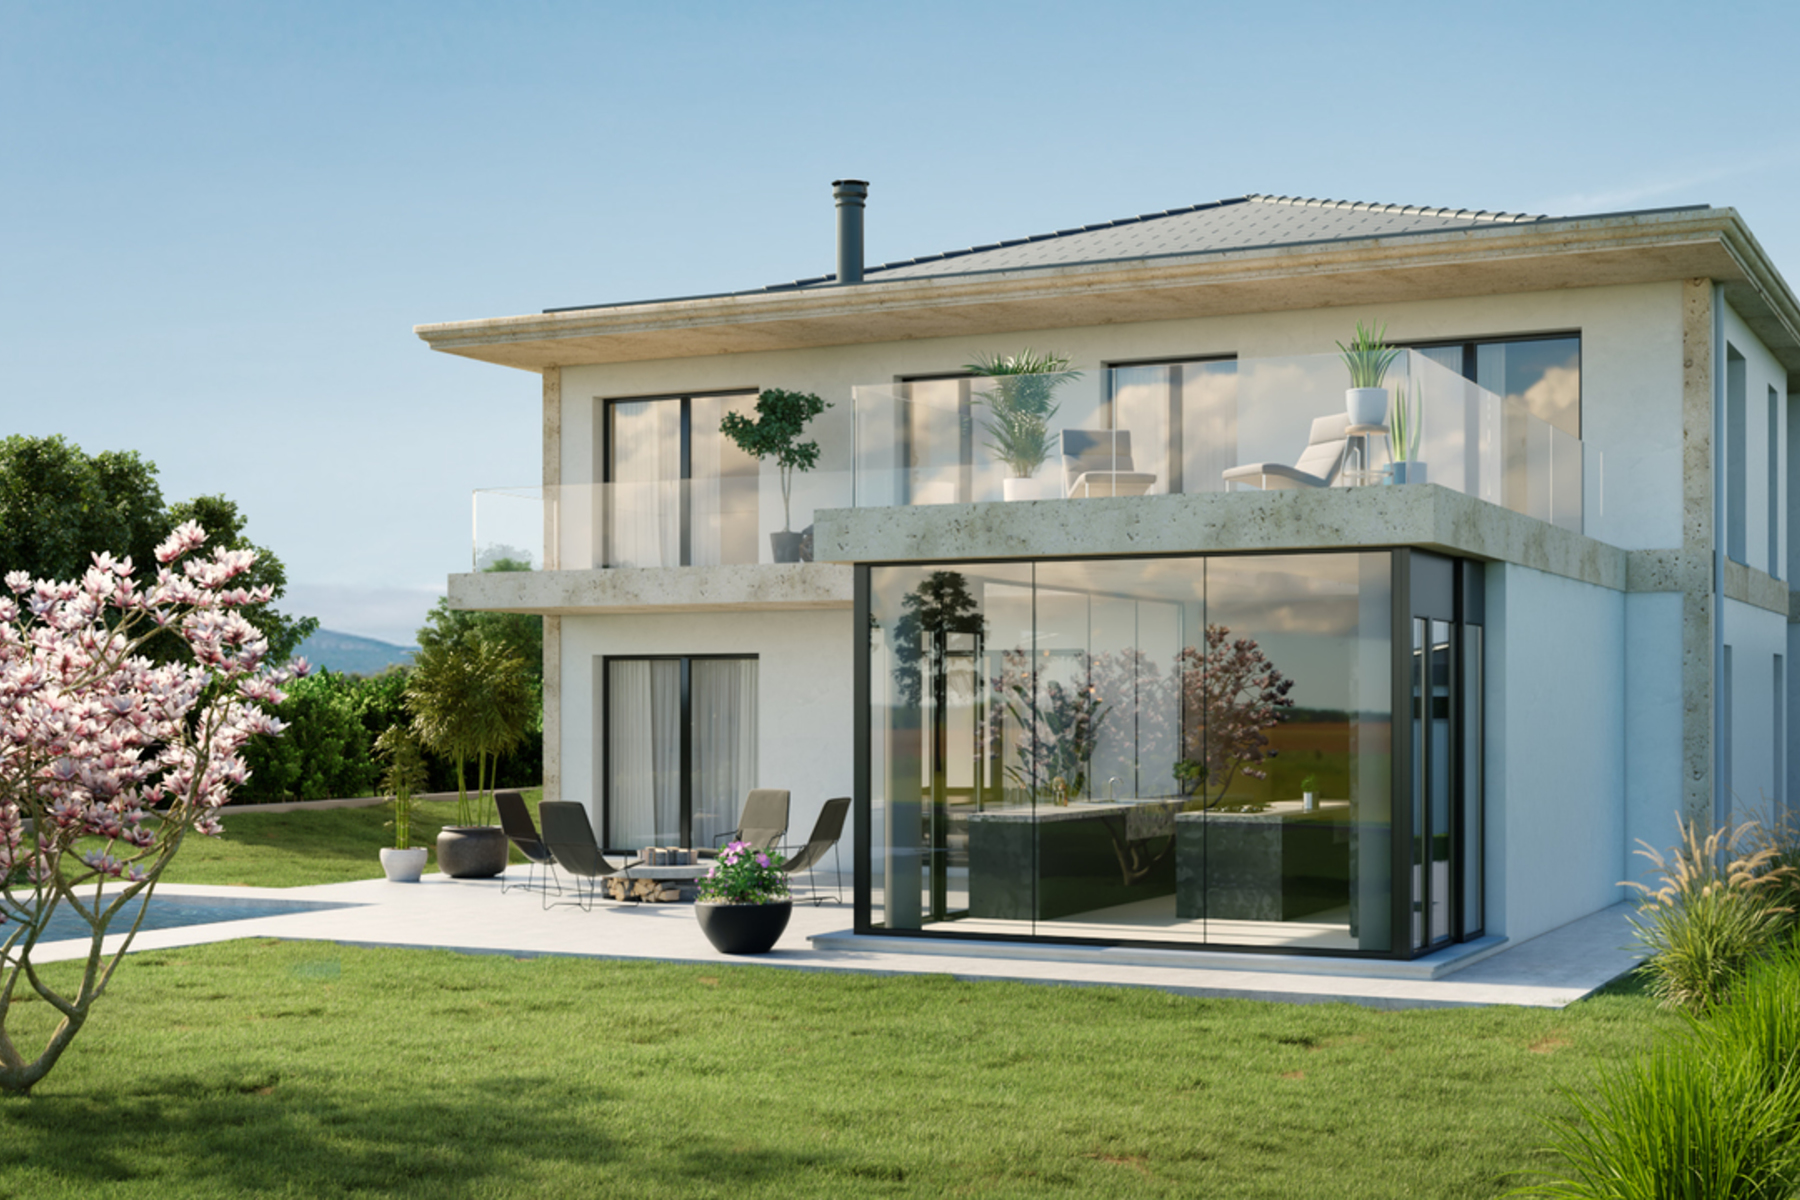 Single Family Homes for Sale at Splendid contemporary house under construction Mies Mies, Vaud 1295 Switzerland